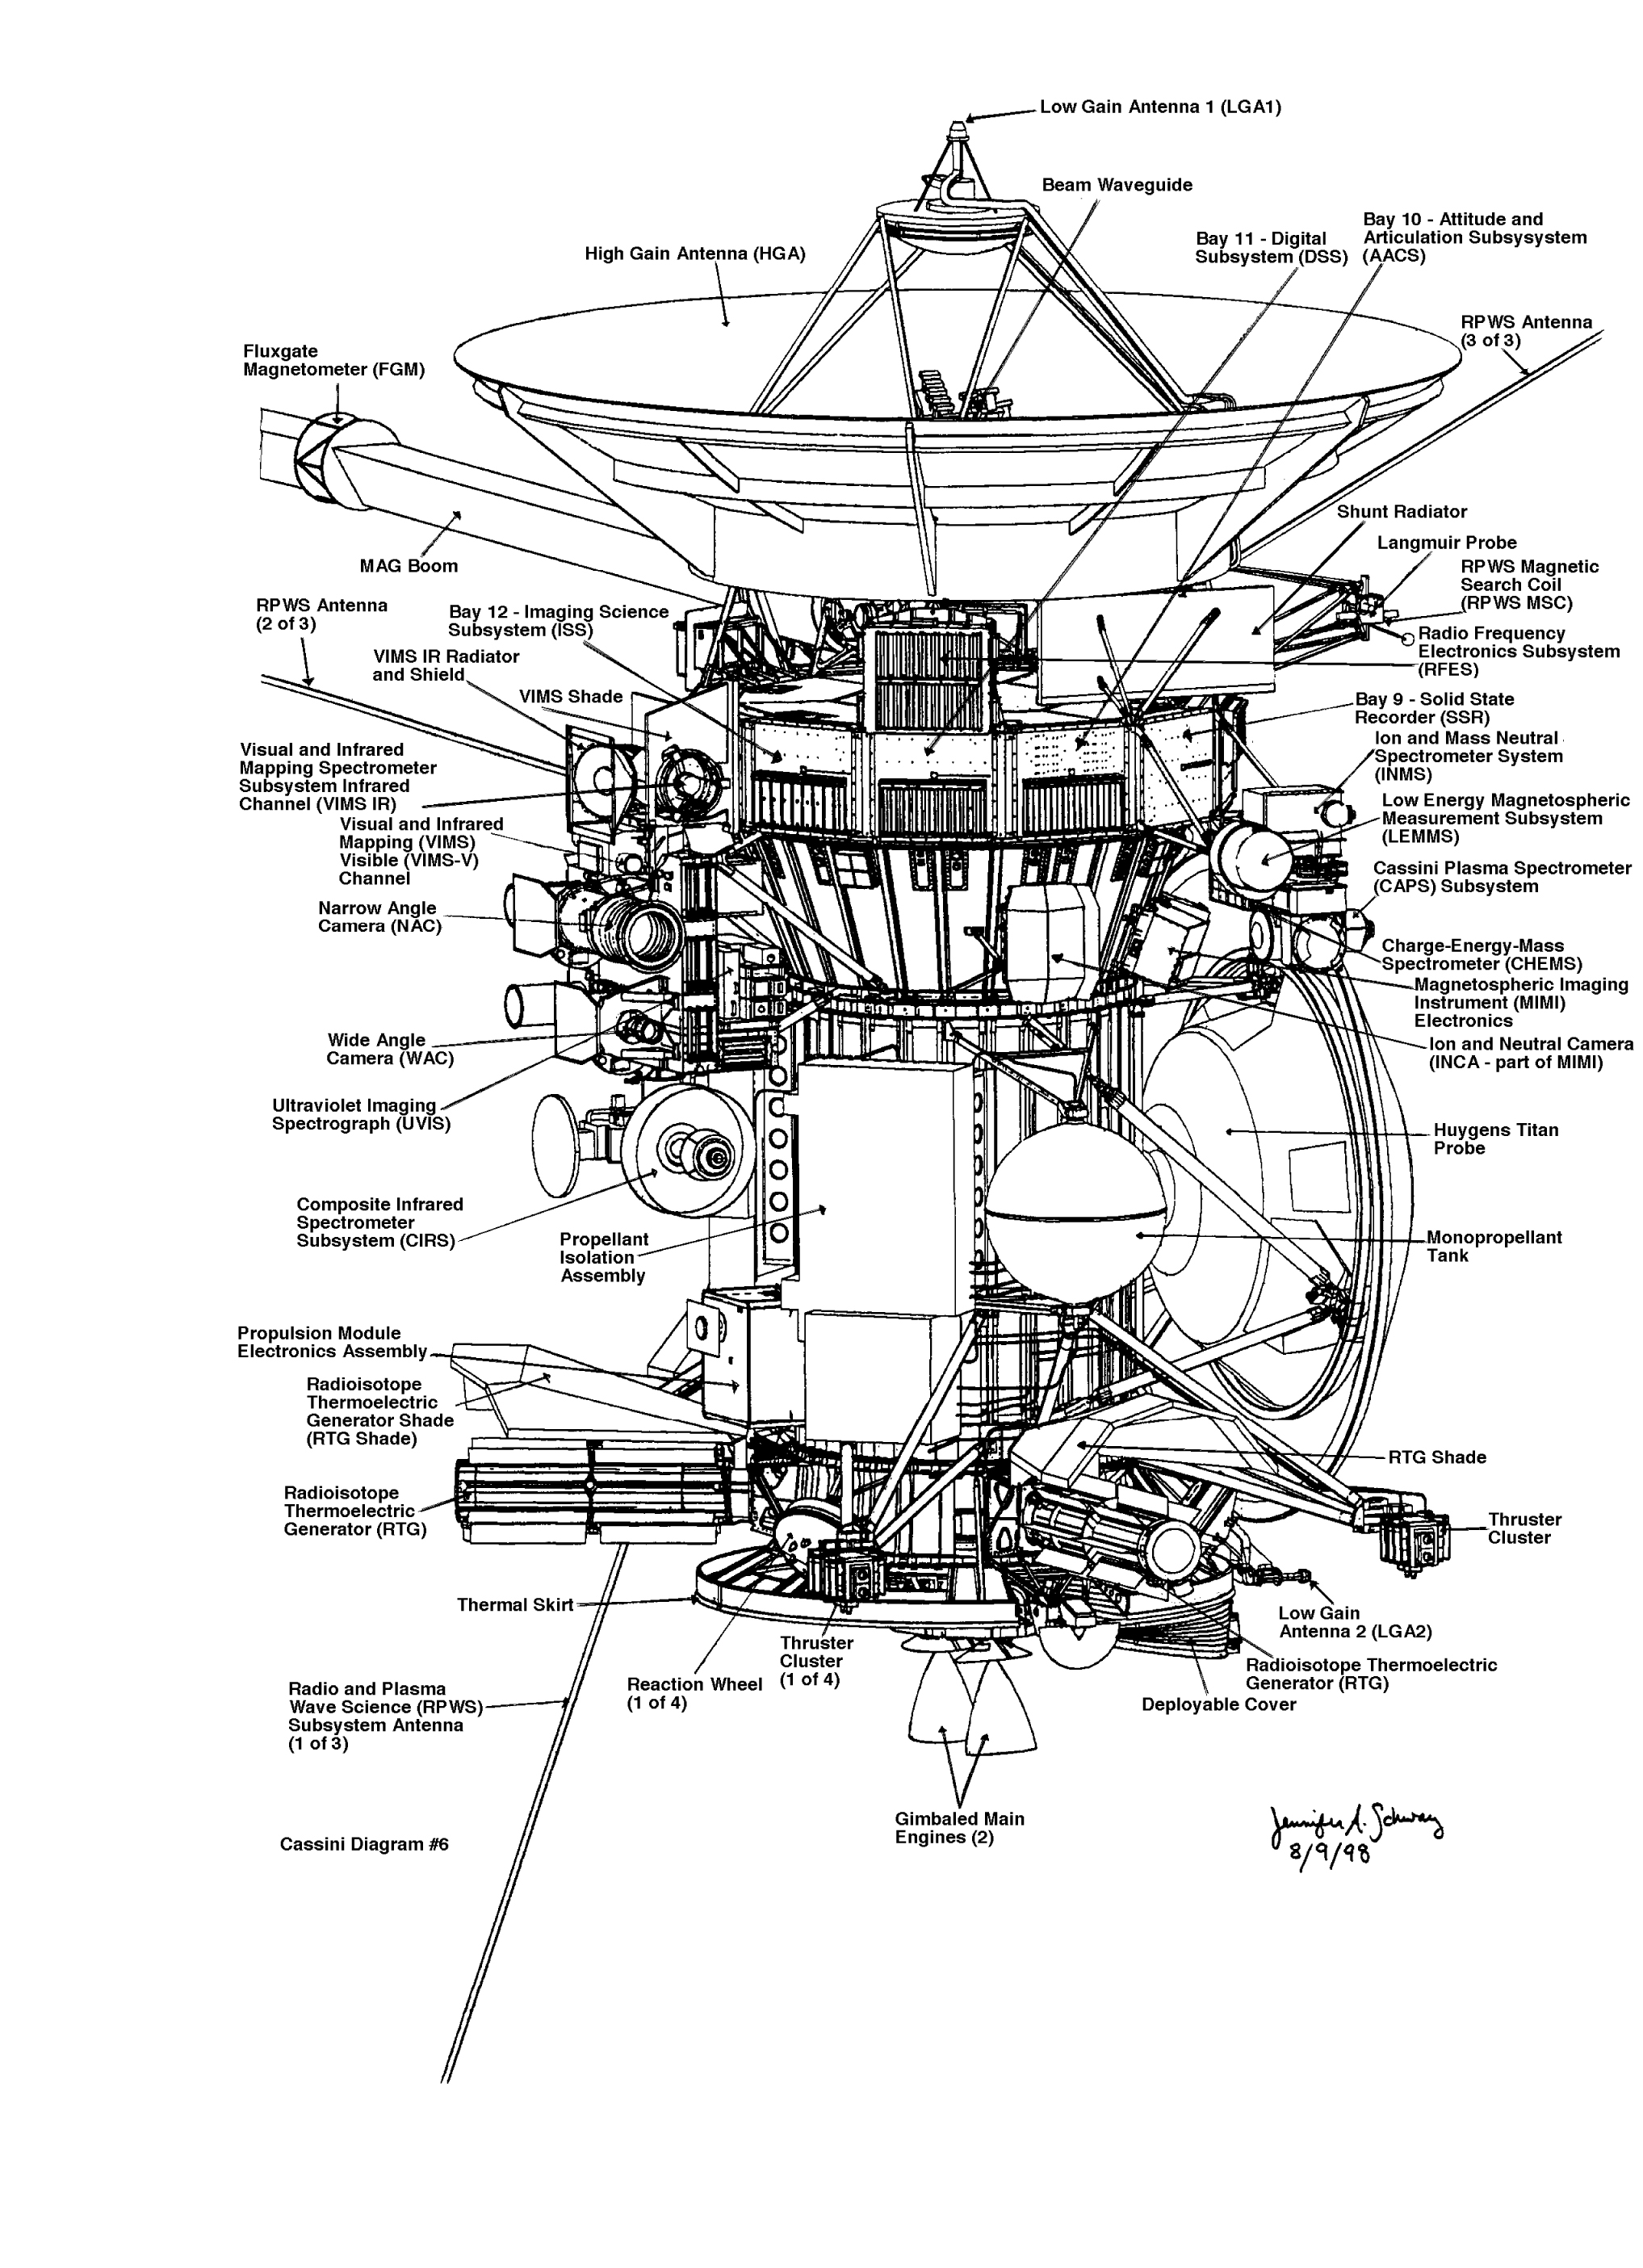 Cassini Spacecraft Schematics Images